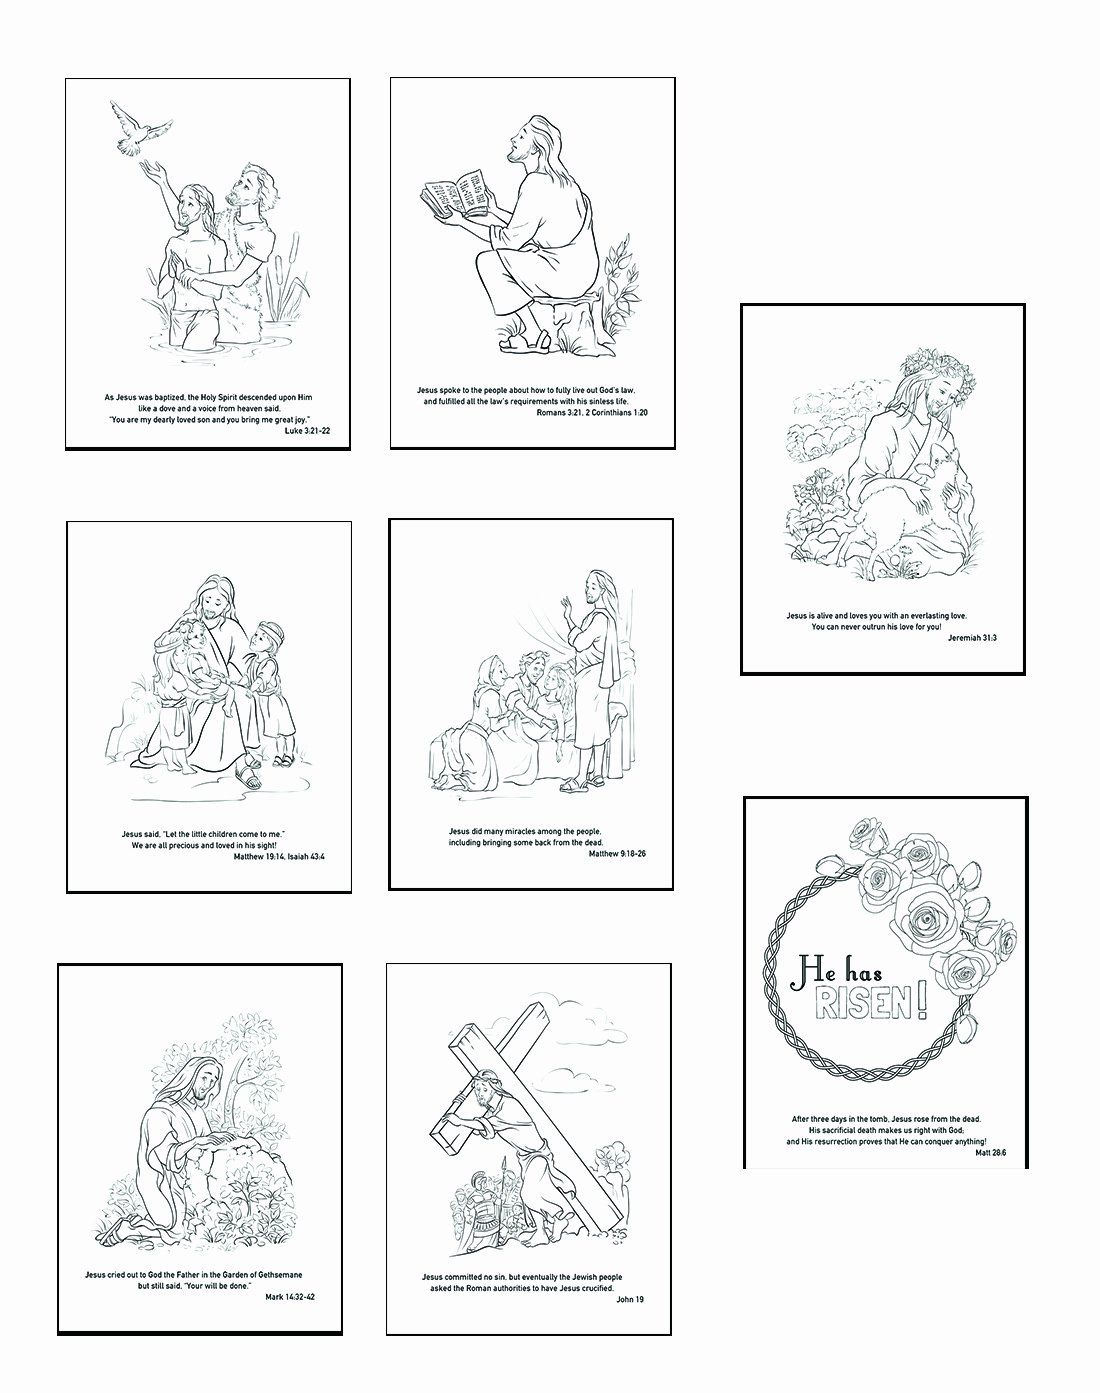 Easter Egg Hunt Coloring Page Awesome Christ Centered